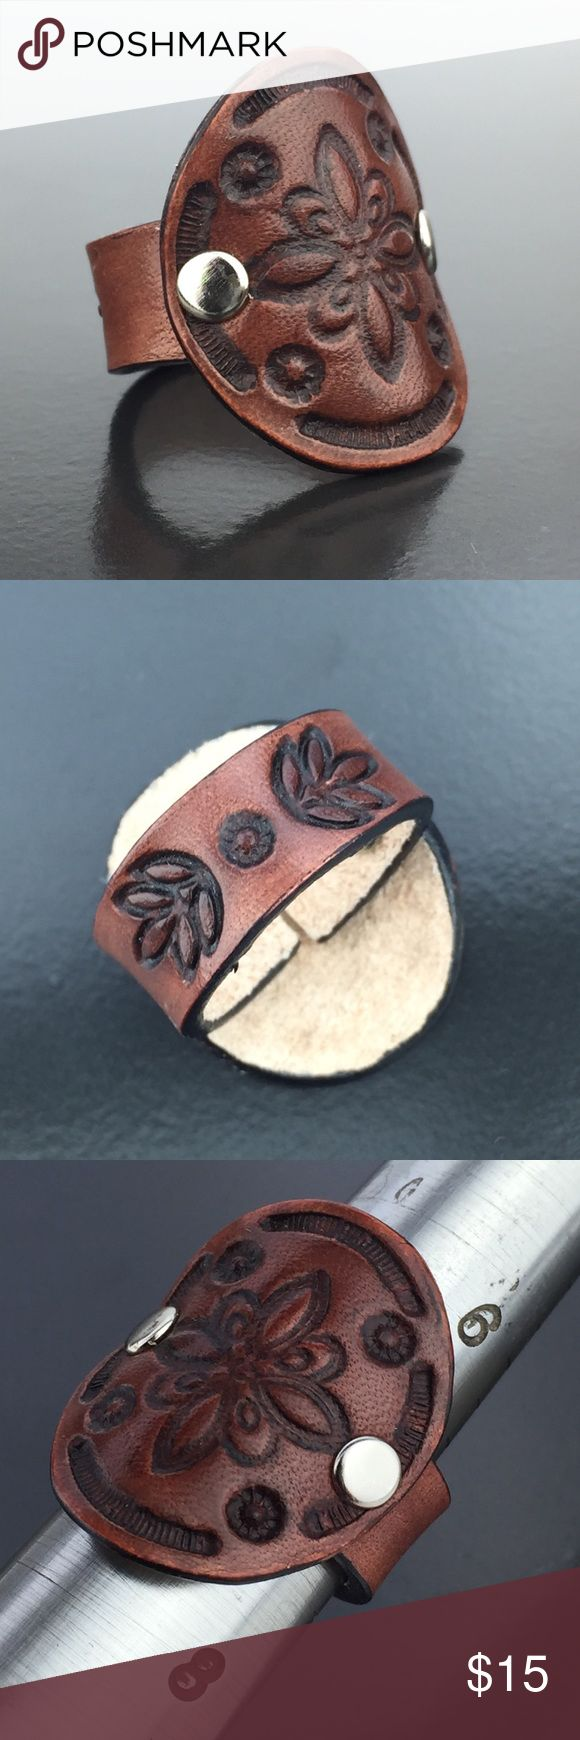 Leather Ring Sienna Maru Hand Tooled Nickel Sz 7 Refined rustic leather ring crafted from flexible genuine cowhide leather. Sienna brown with antiqued impressions, contrasting black edges, nickel hardware. Size 7. Cut, tooled, and finished by hand. No two exactly alike. Care for leather jewelry and accessories as you would leather shoes and bags - keep dry, buff with a soft cloth, condition as desired as time, weather, and wear distresses the leather. Handmade USA, GemFOX Boutique. GemFOX…